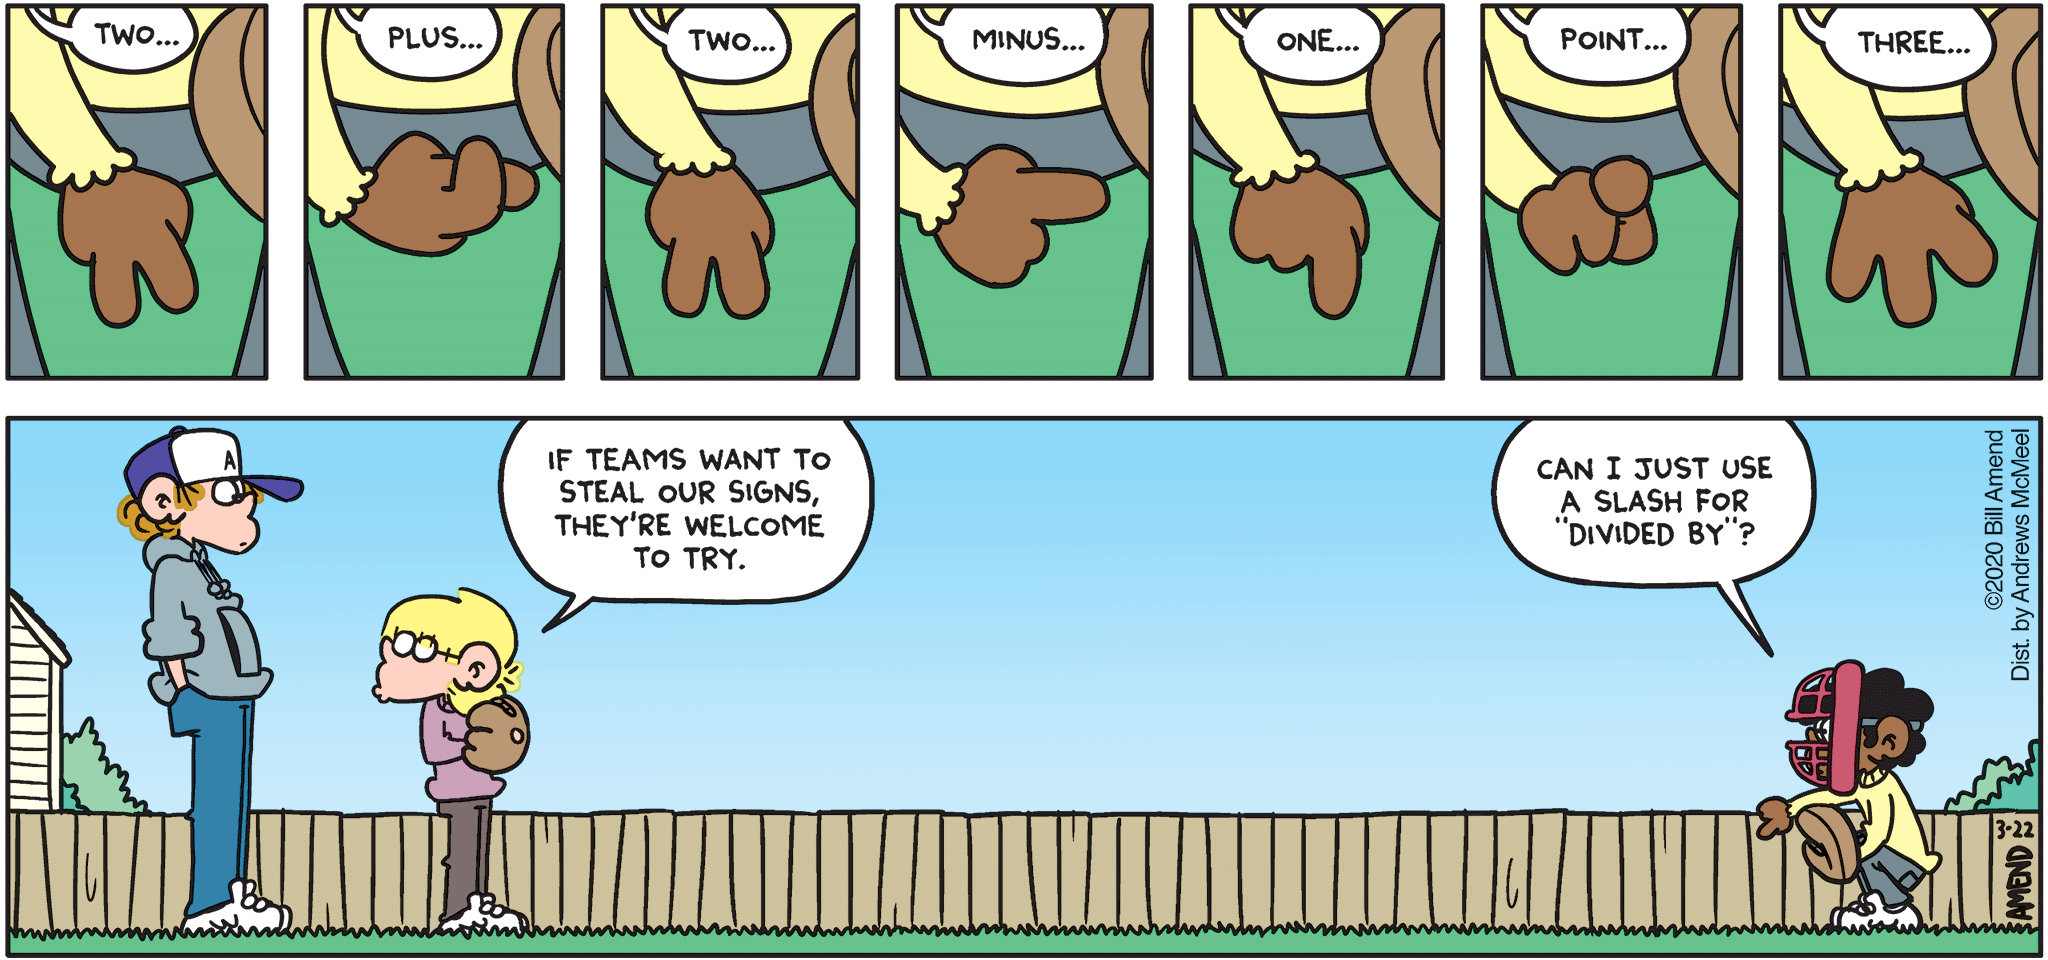 bill-amend-pitch-count-baseball-FoxTrot comic